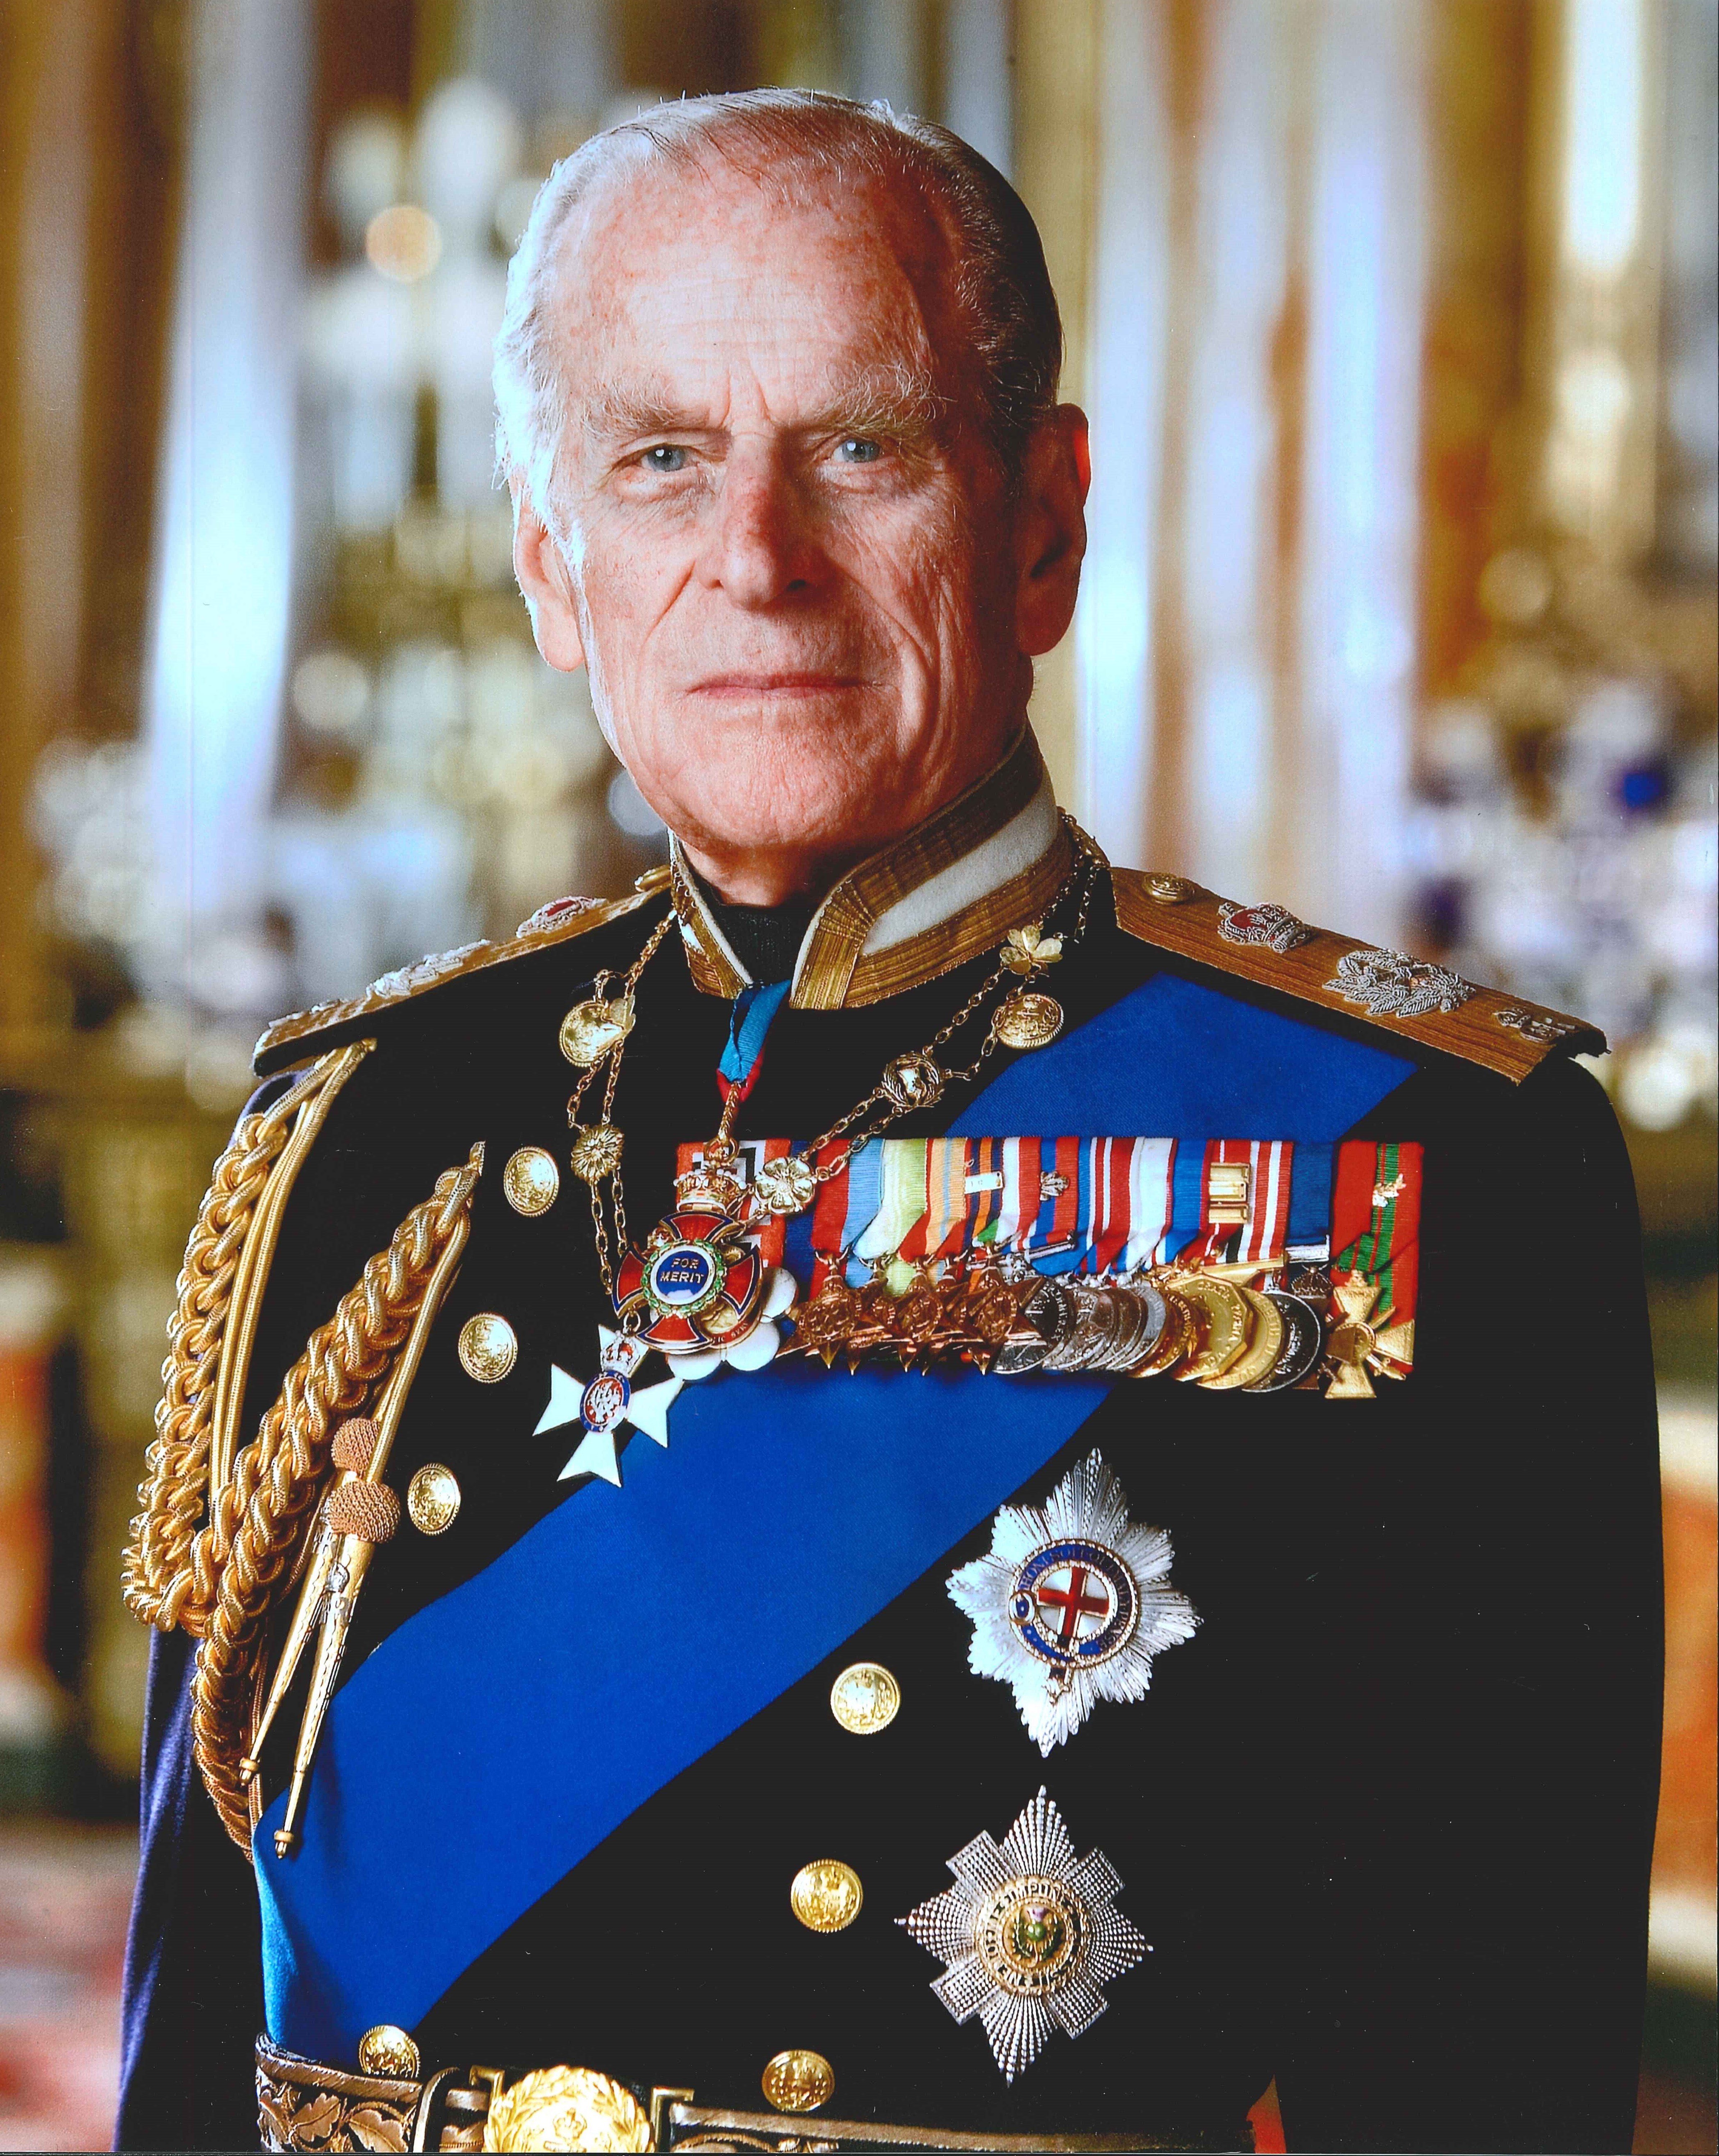 A photo of His Royal Highness Prince Philip, The Duke of Edinburgh